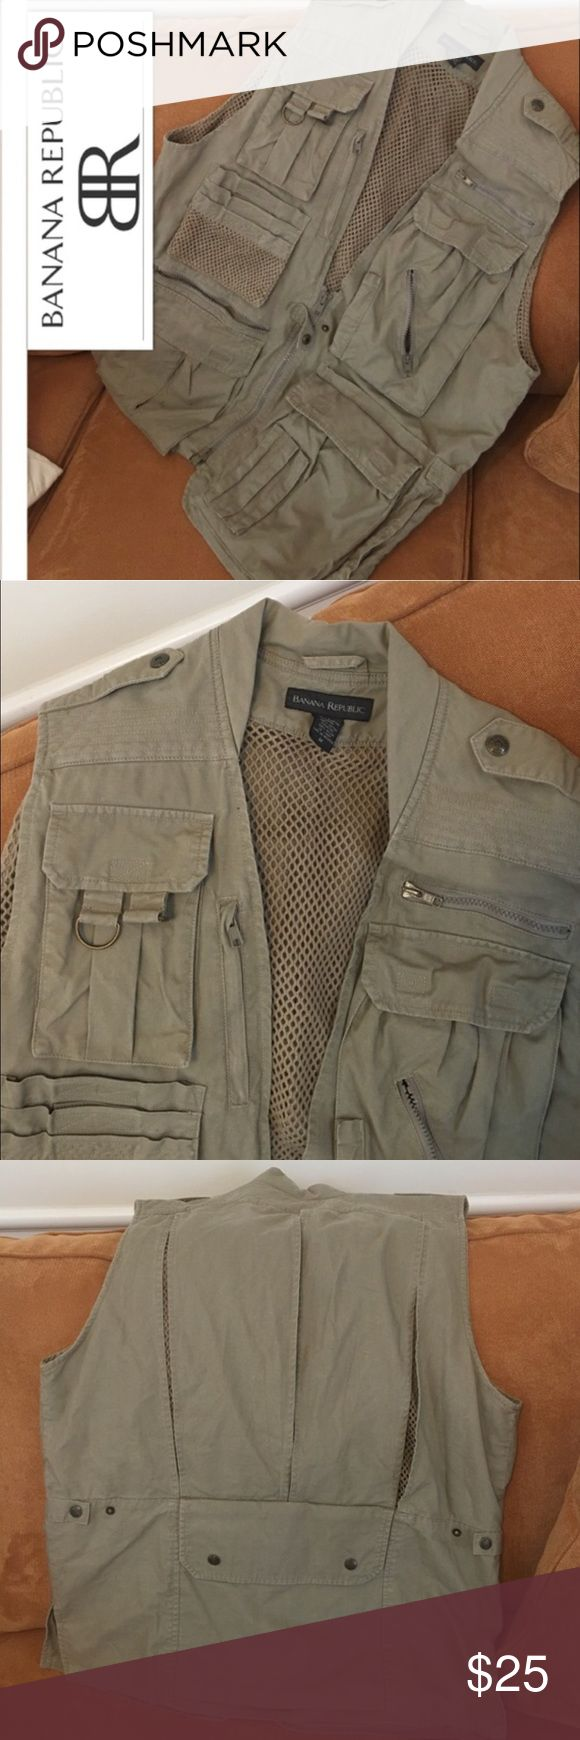 Banana Republic Safari Vest; Size Medium Banana Republic Safari Vest; Unisex & multi-functional; Size Medium; Great for hunting, photography, fishing or like me... just plain FUN WEAR!! Zip front, Sleeveless, 15 zippers or snaps. 100% cotton, vented mesh back, cinched sides. Zipper and hook & loop closure pockets. Made in The British Crown Colony of Hong Kong; Machine wash / tumble dry Banana Republic Jackets & Coats Vests